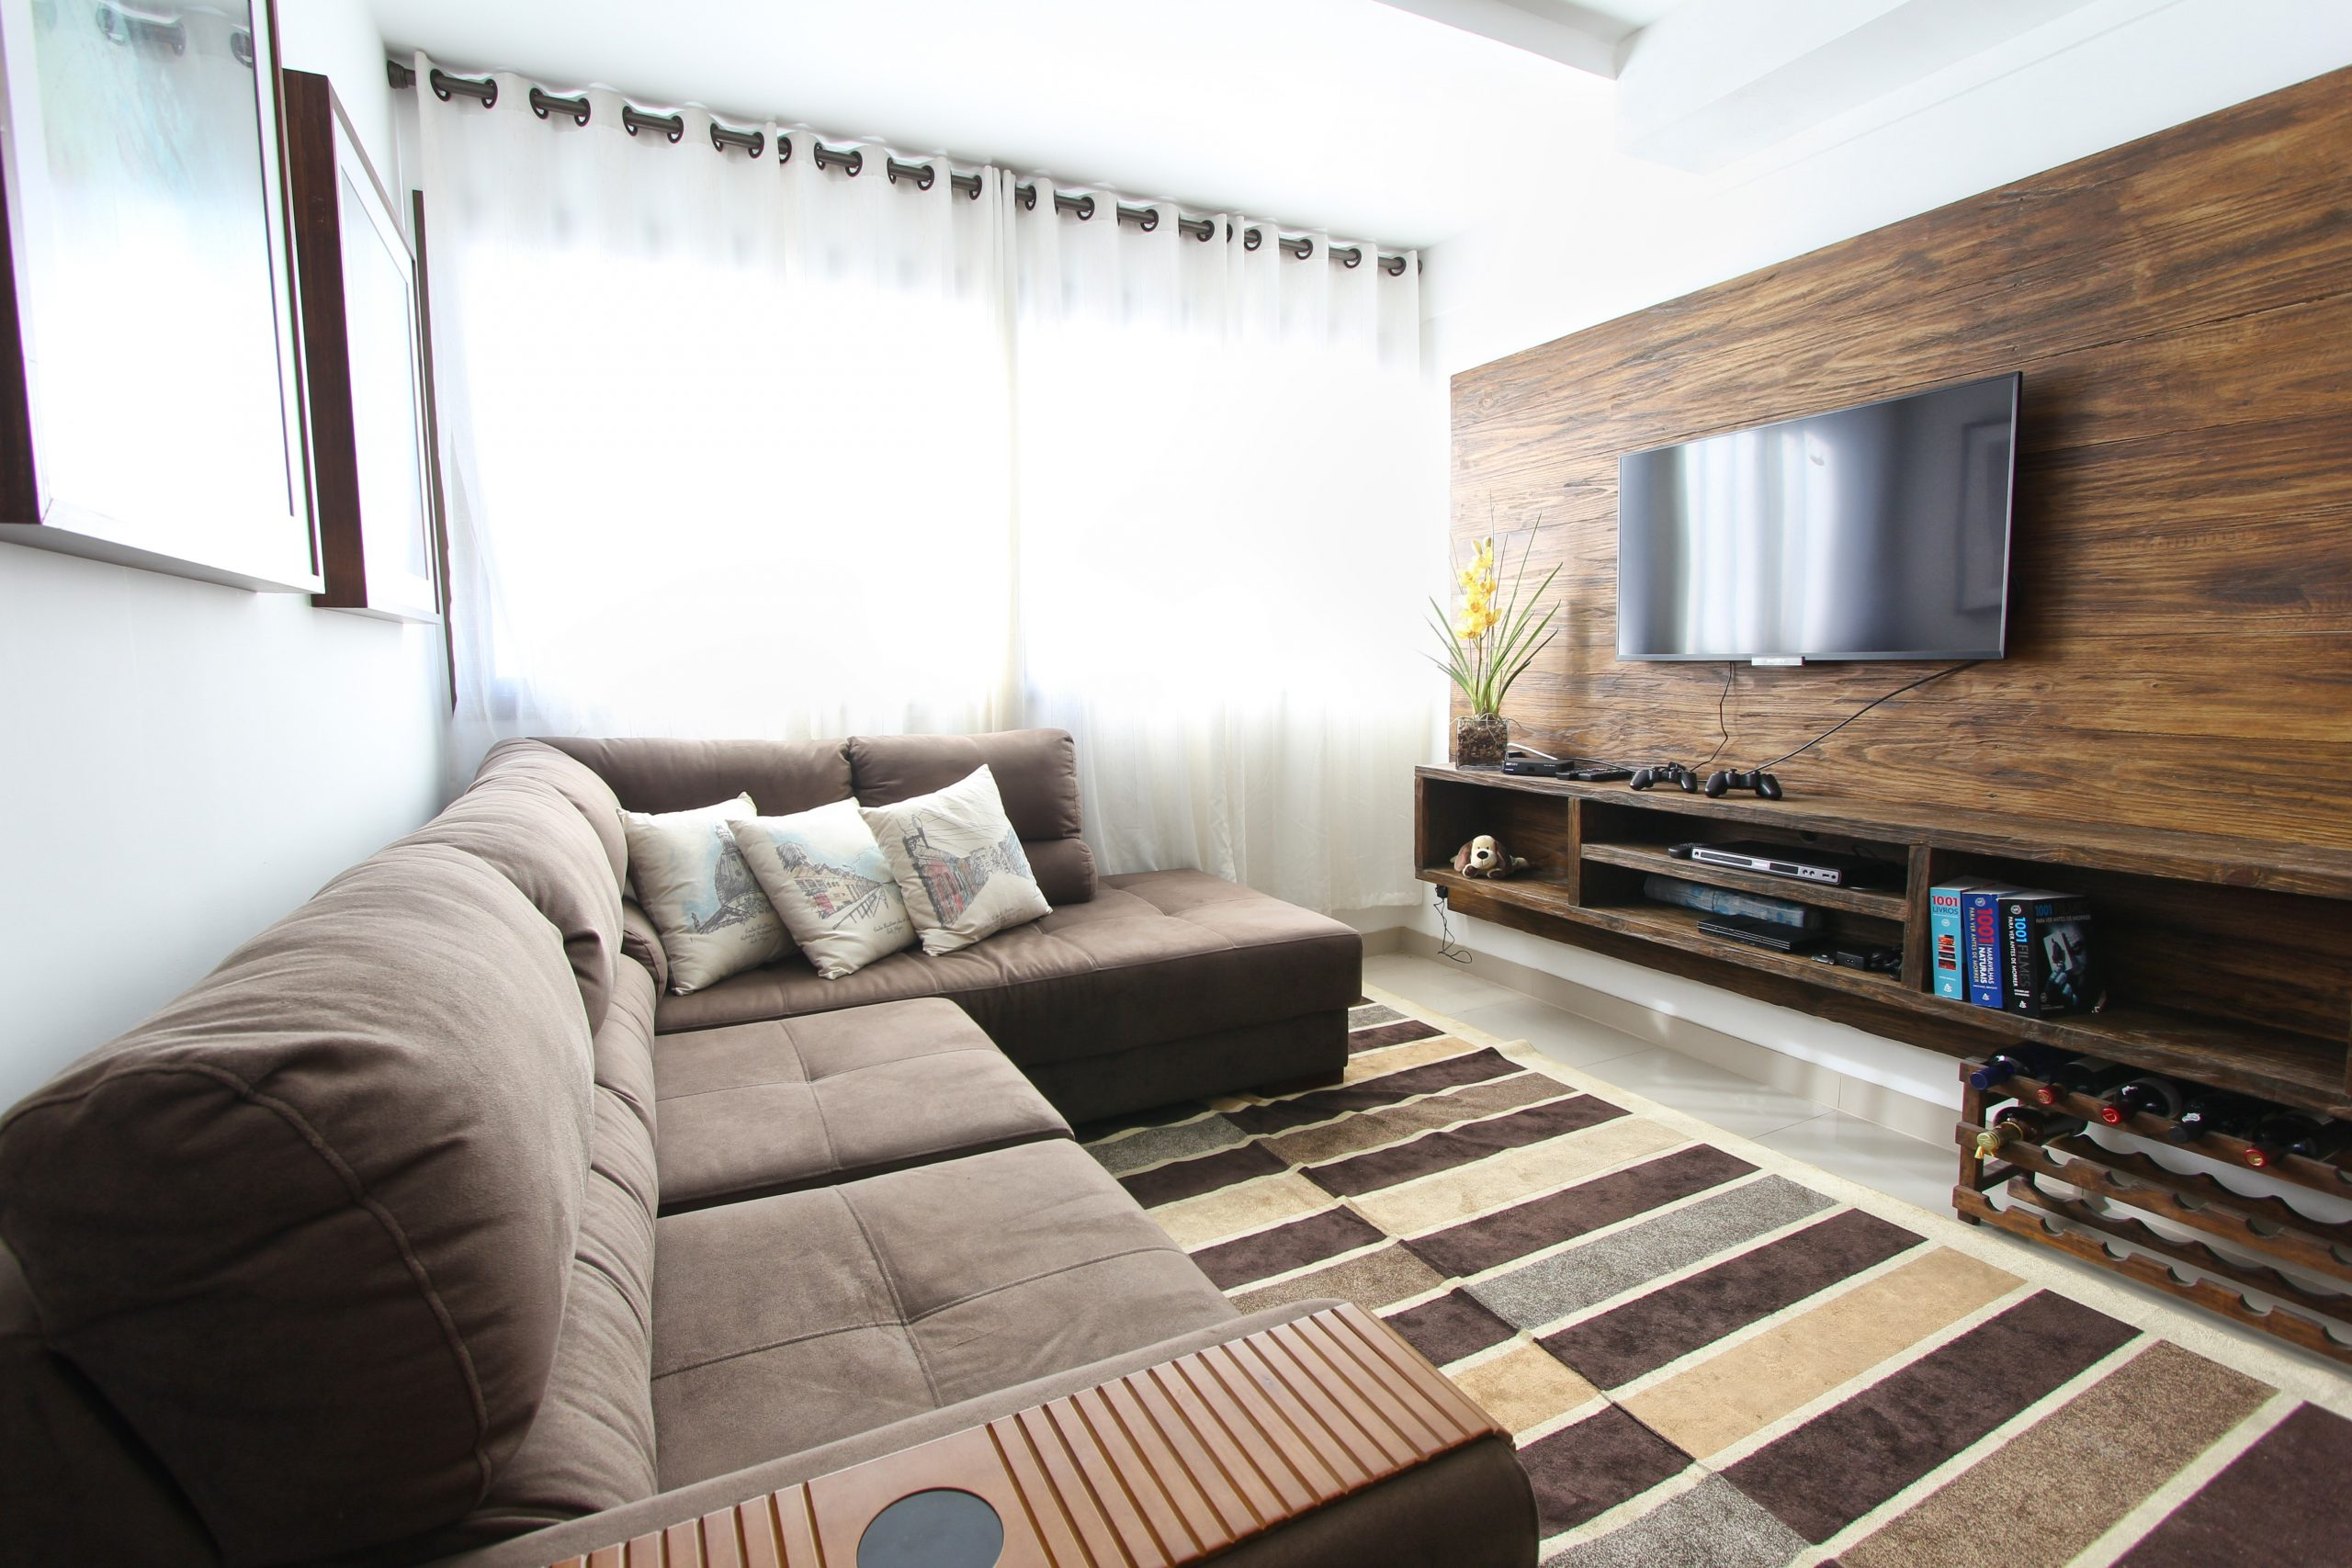 Flatscreen TV mounted above entertainment center cables concealed